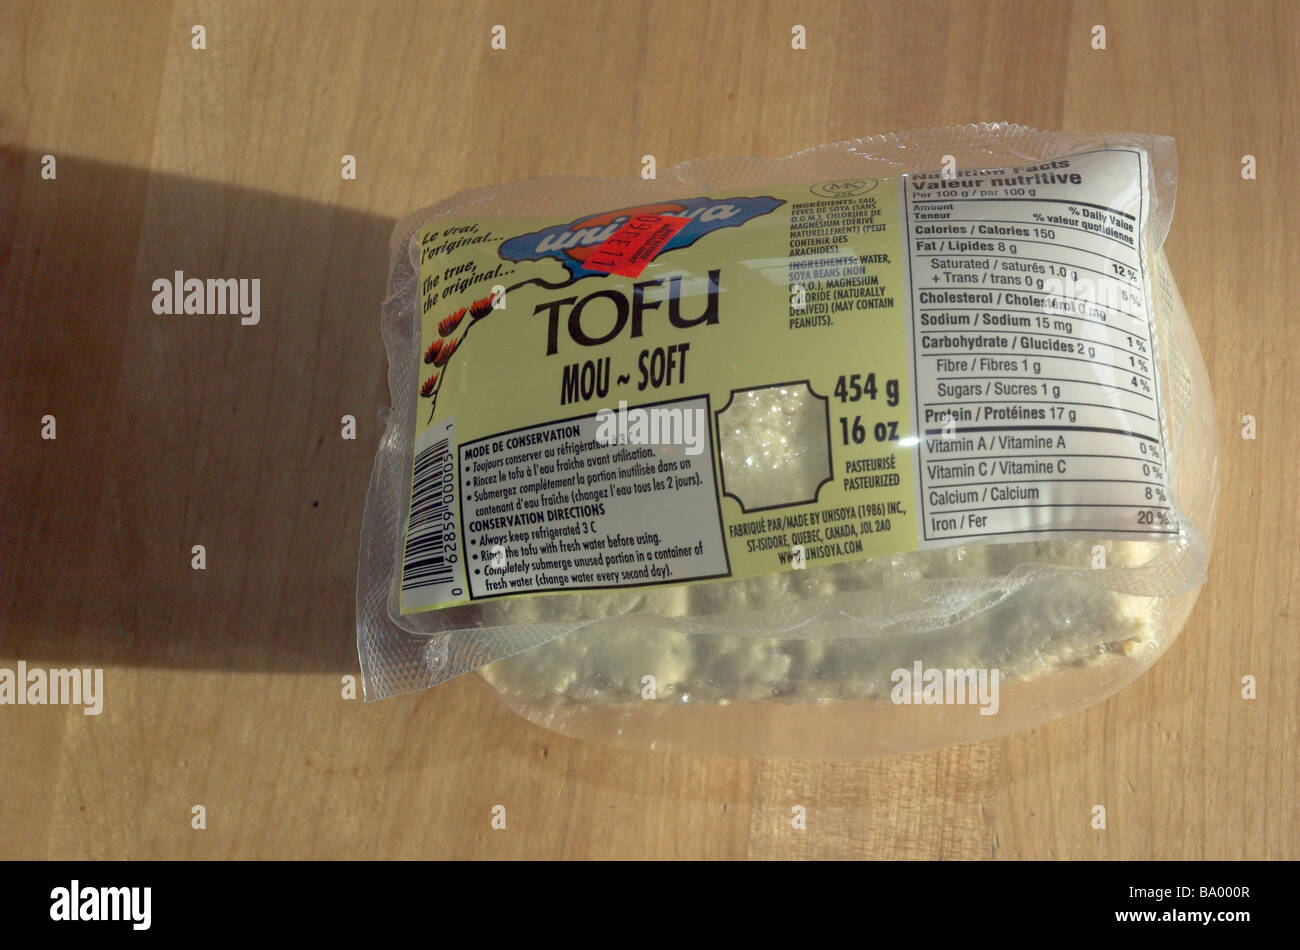 Bad tofu that has inflated its own packet - Stock Image